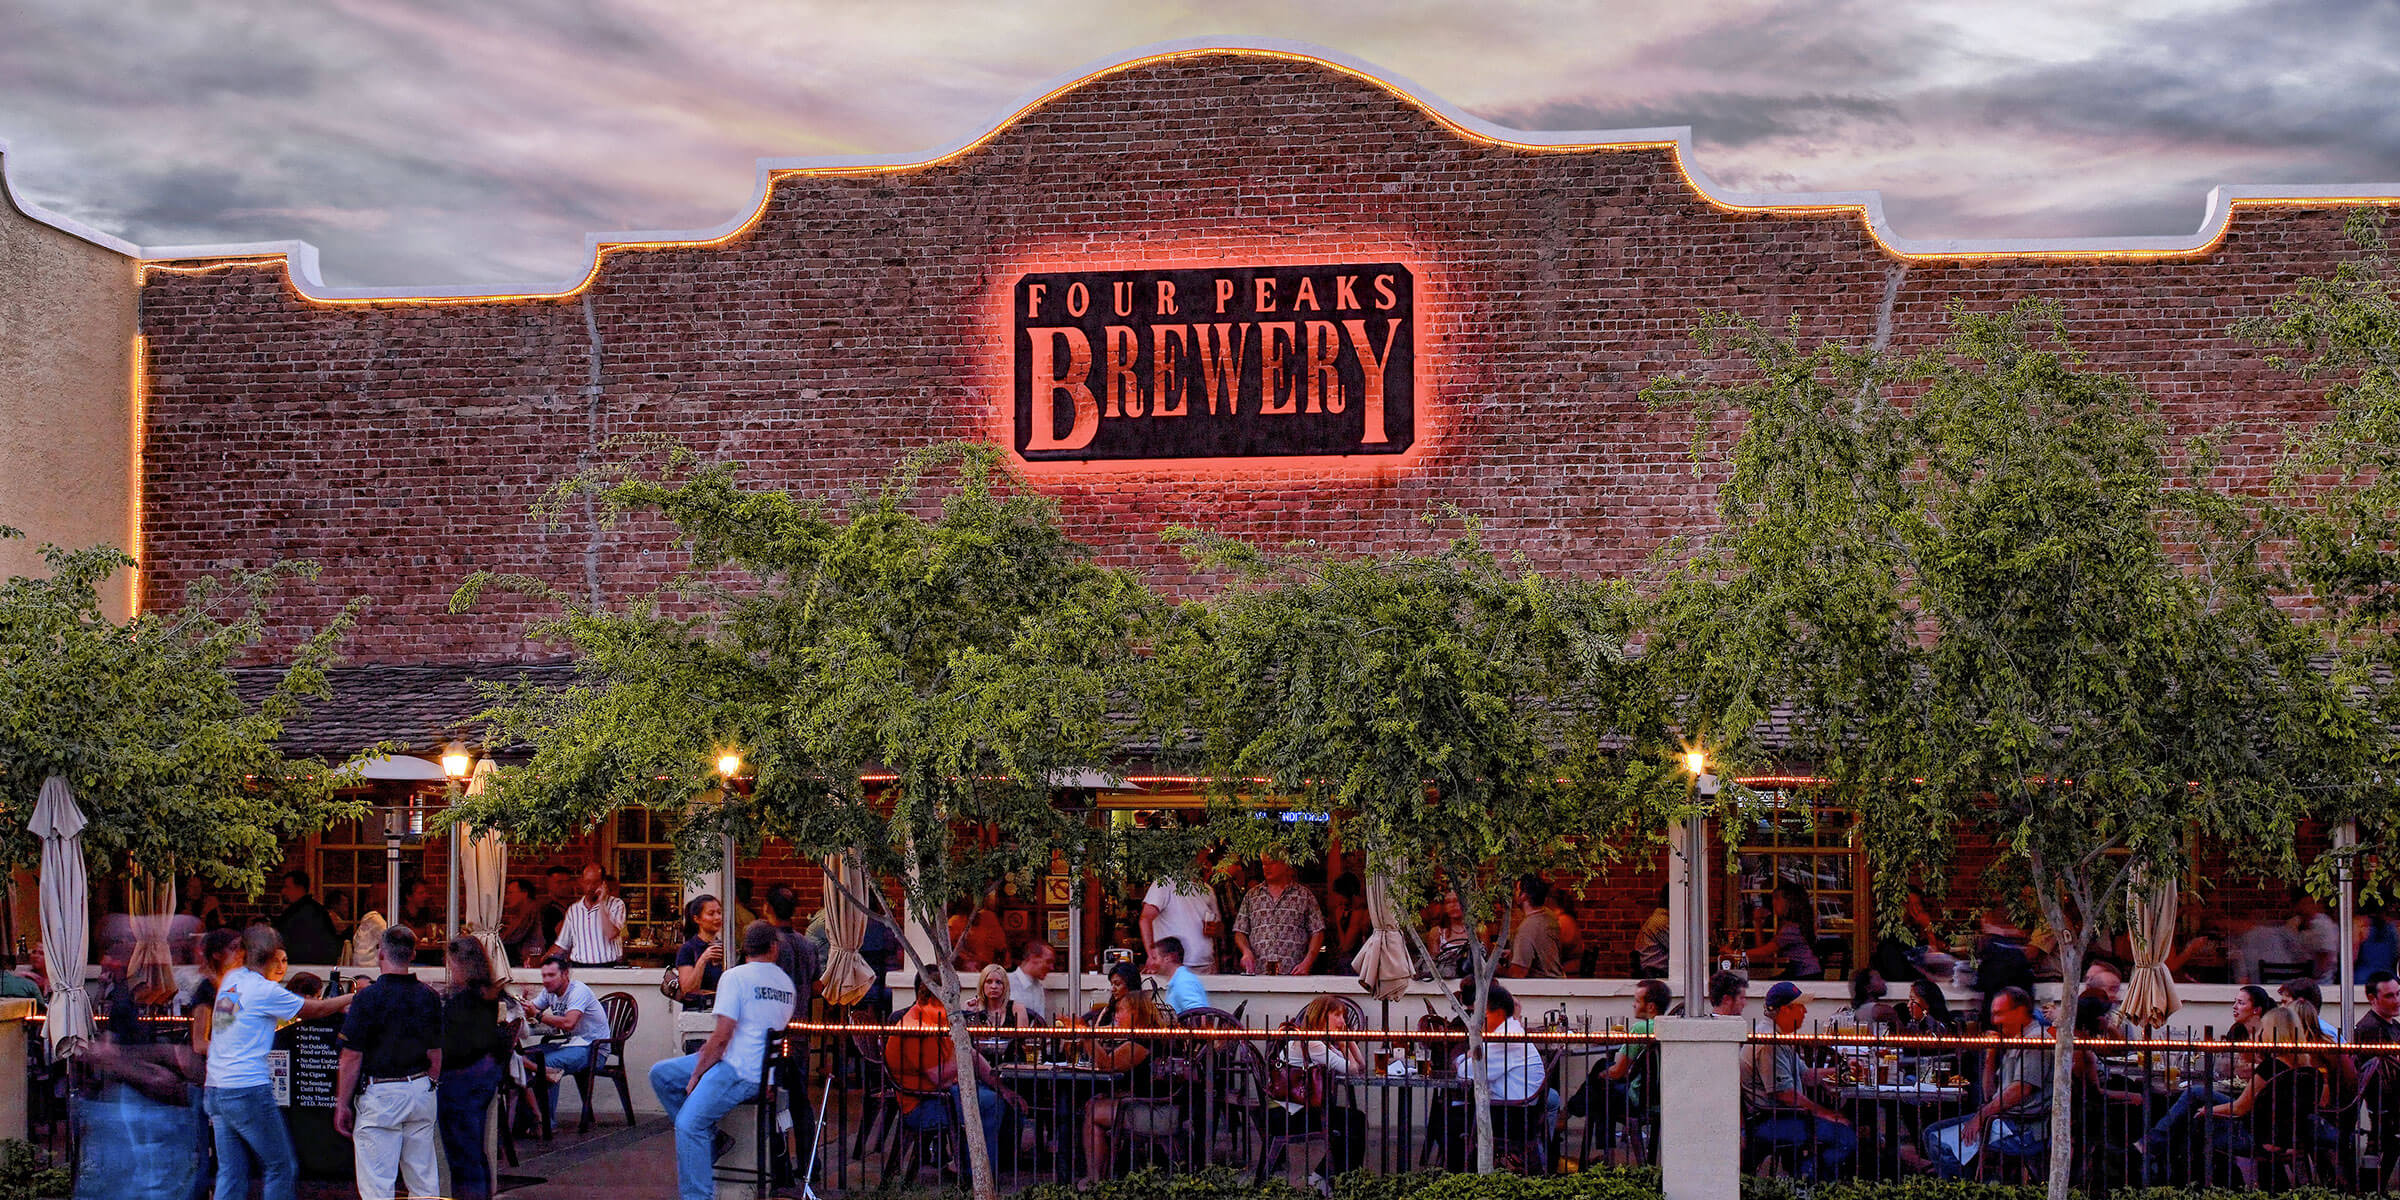 Outside the Four Peaks Brewing Co.'s 8th Street Brewery in Tempe, Arizona